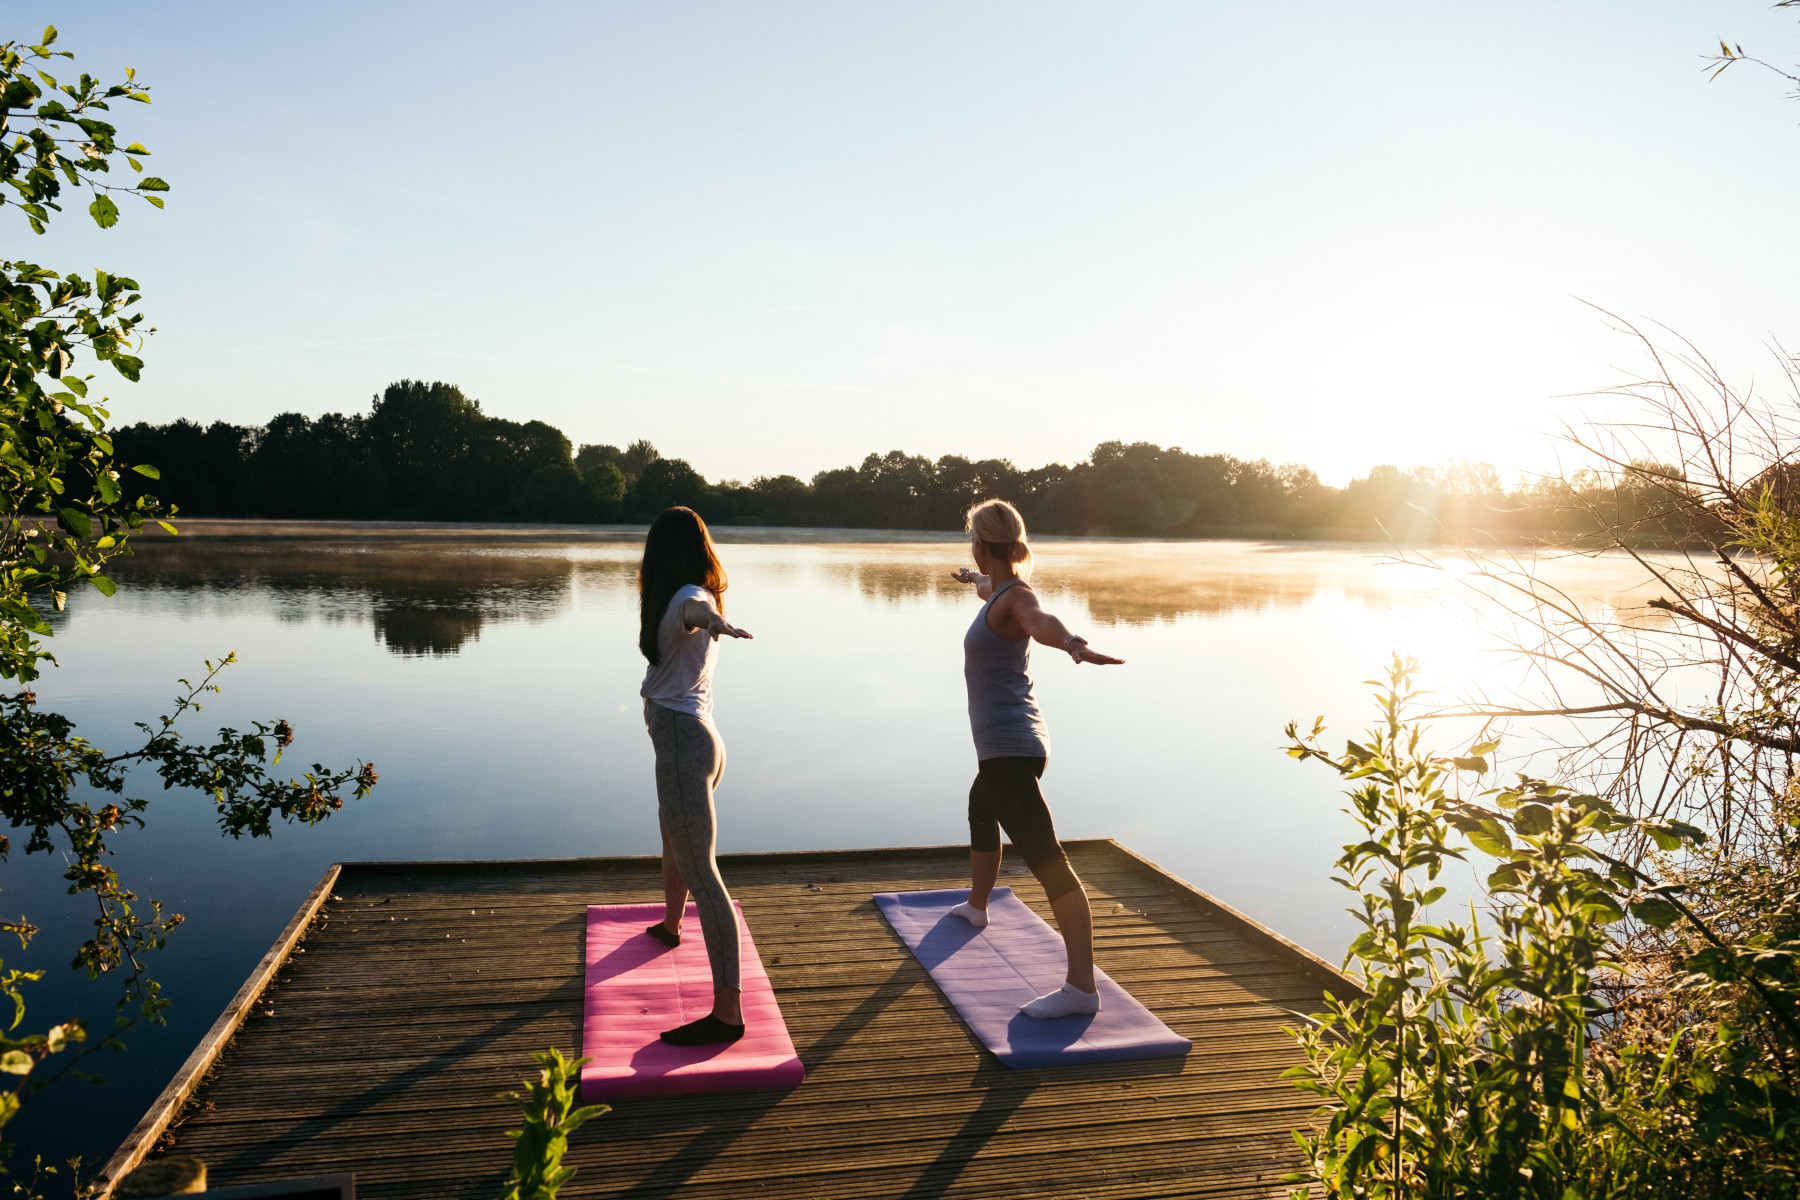 Practicing yoga at Cotswold Water Park